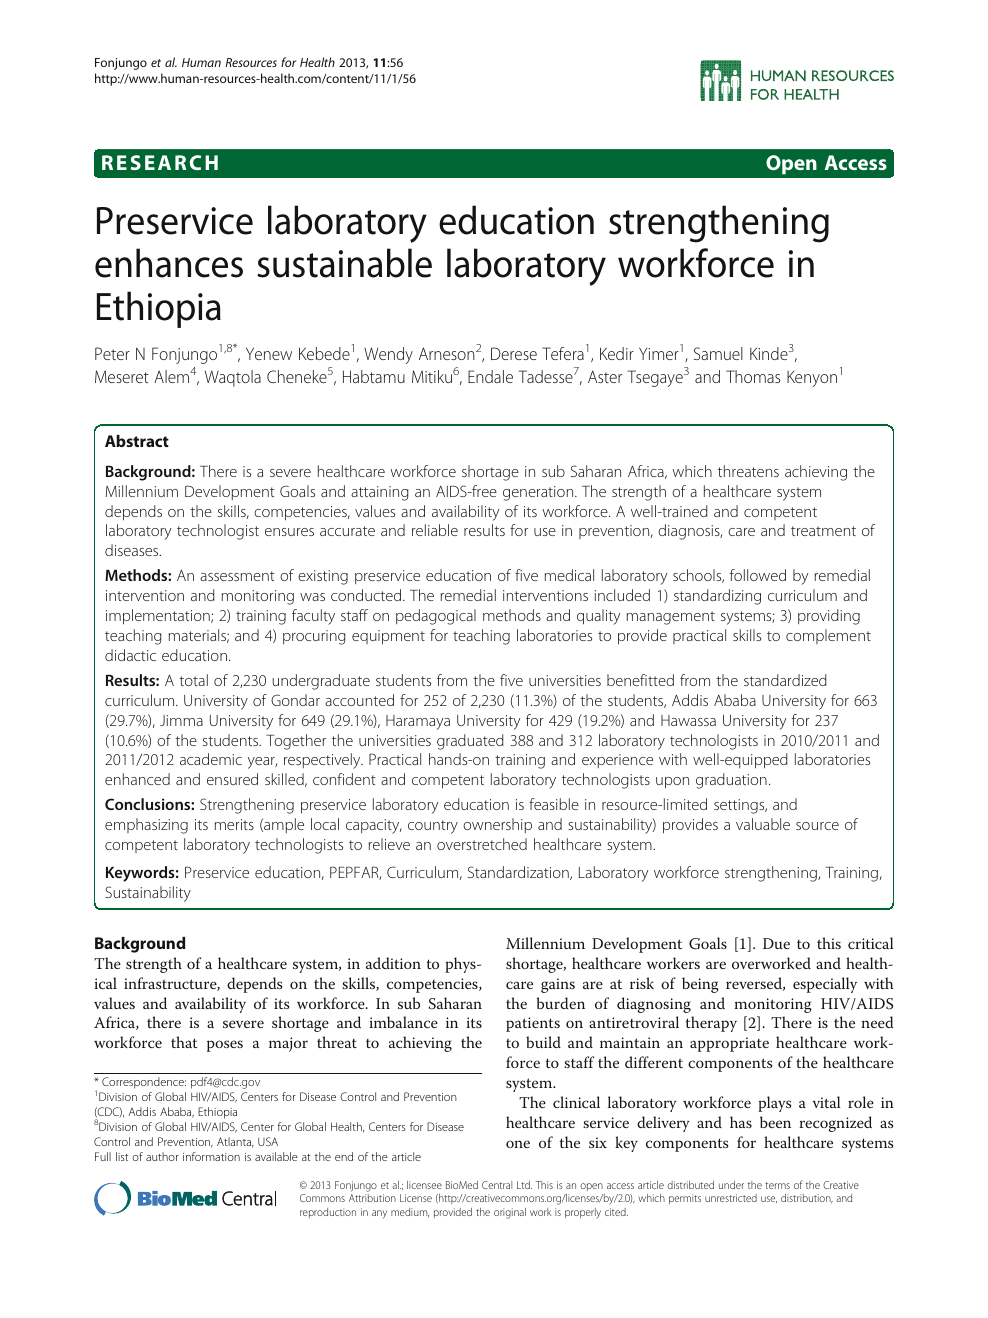 Preservice laboratory education strengthening enhances